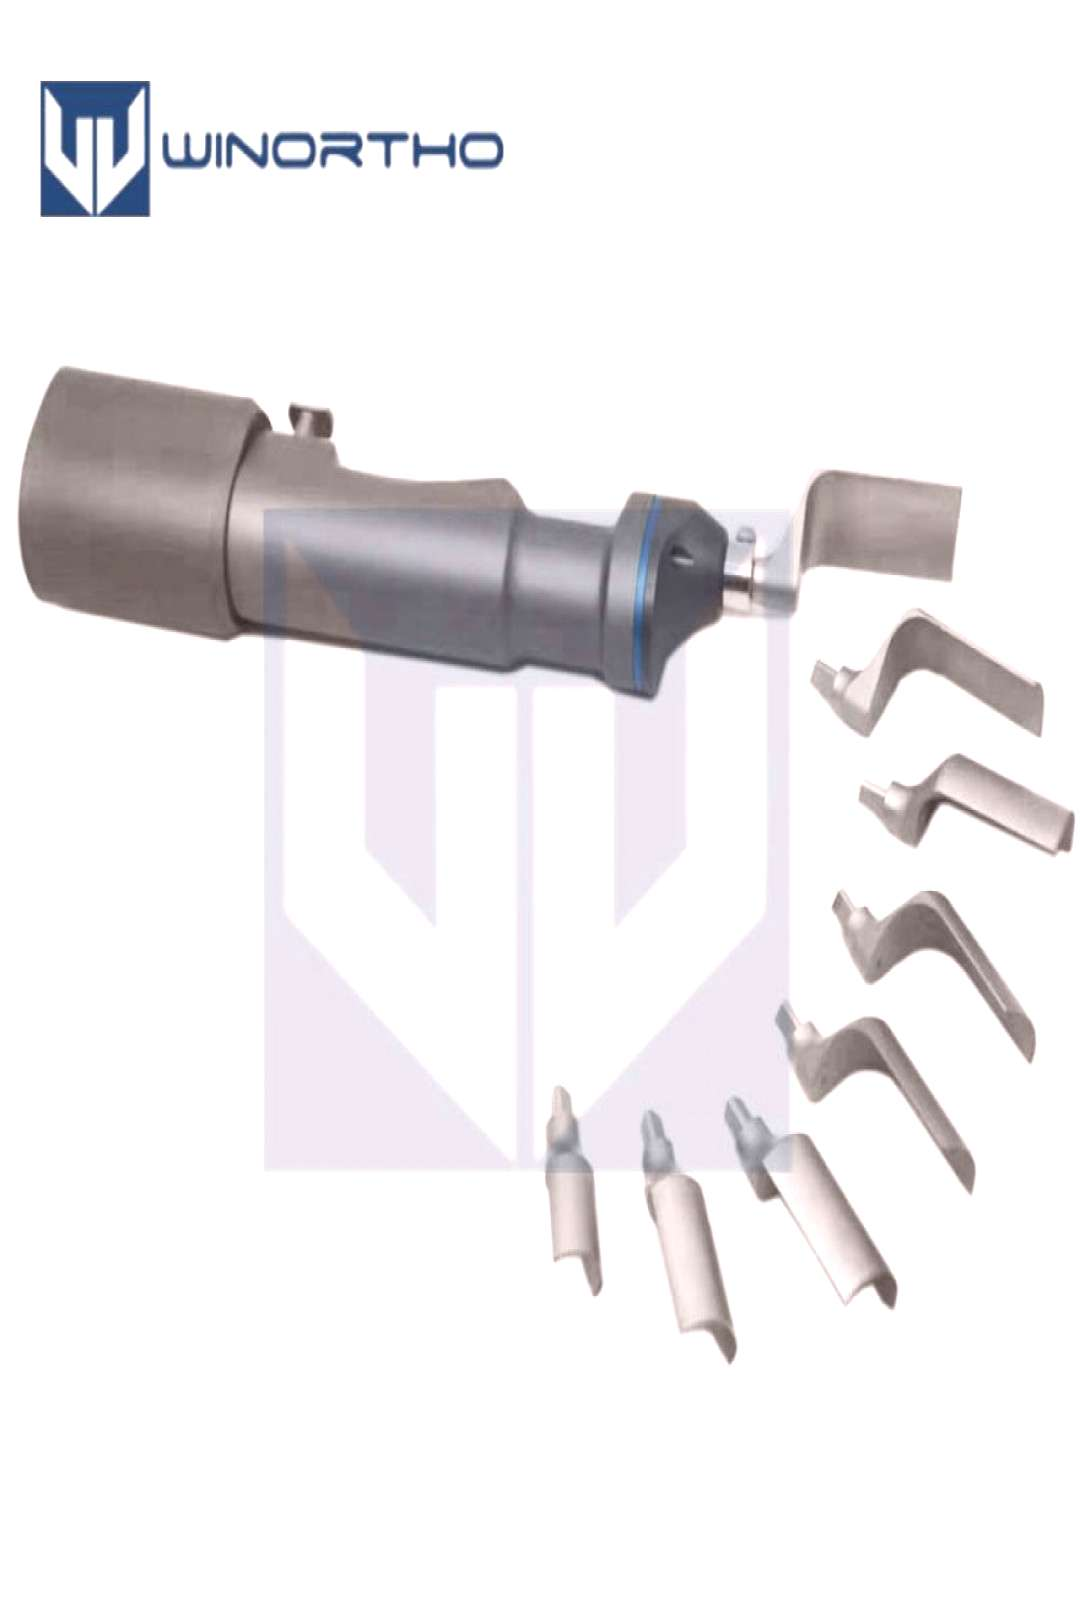 TPLO orthopedic instrument Veterinary Surgery blade saw,orthopaedic tools oscillating saw blades or